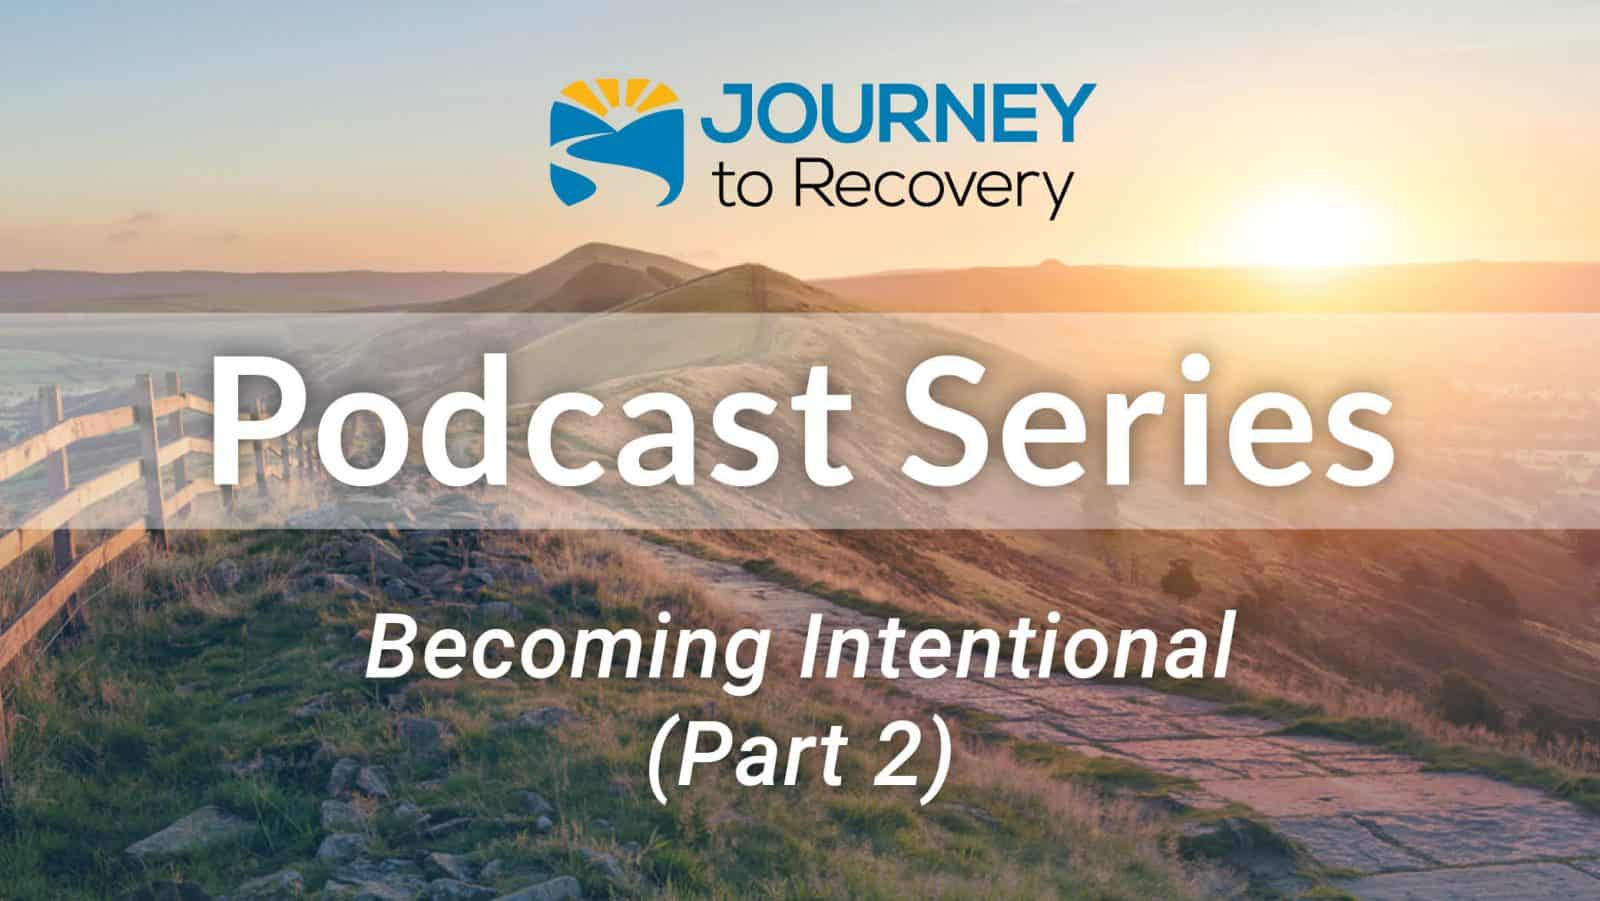 Becoming Intentional (Part 2)